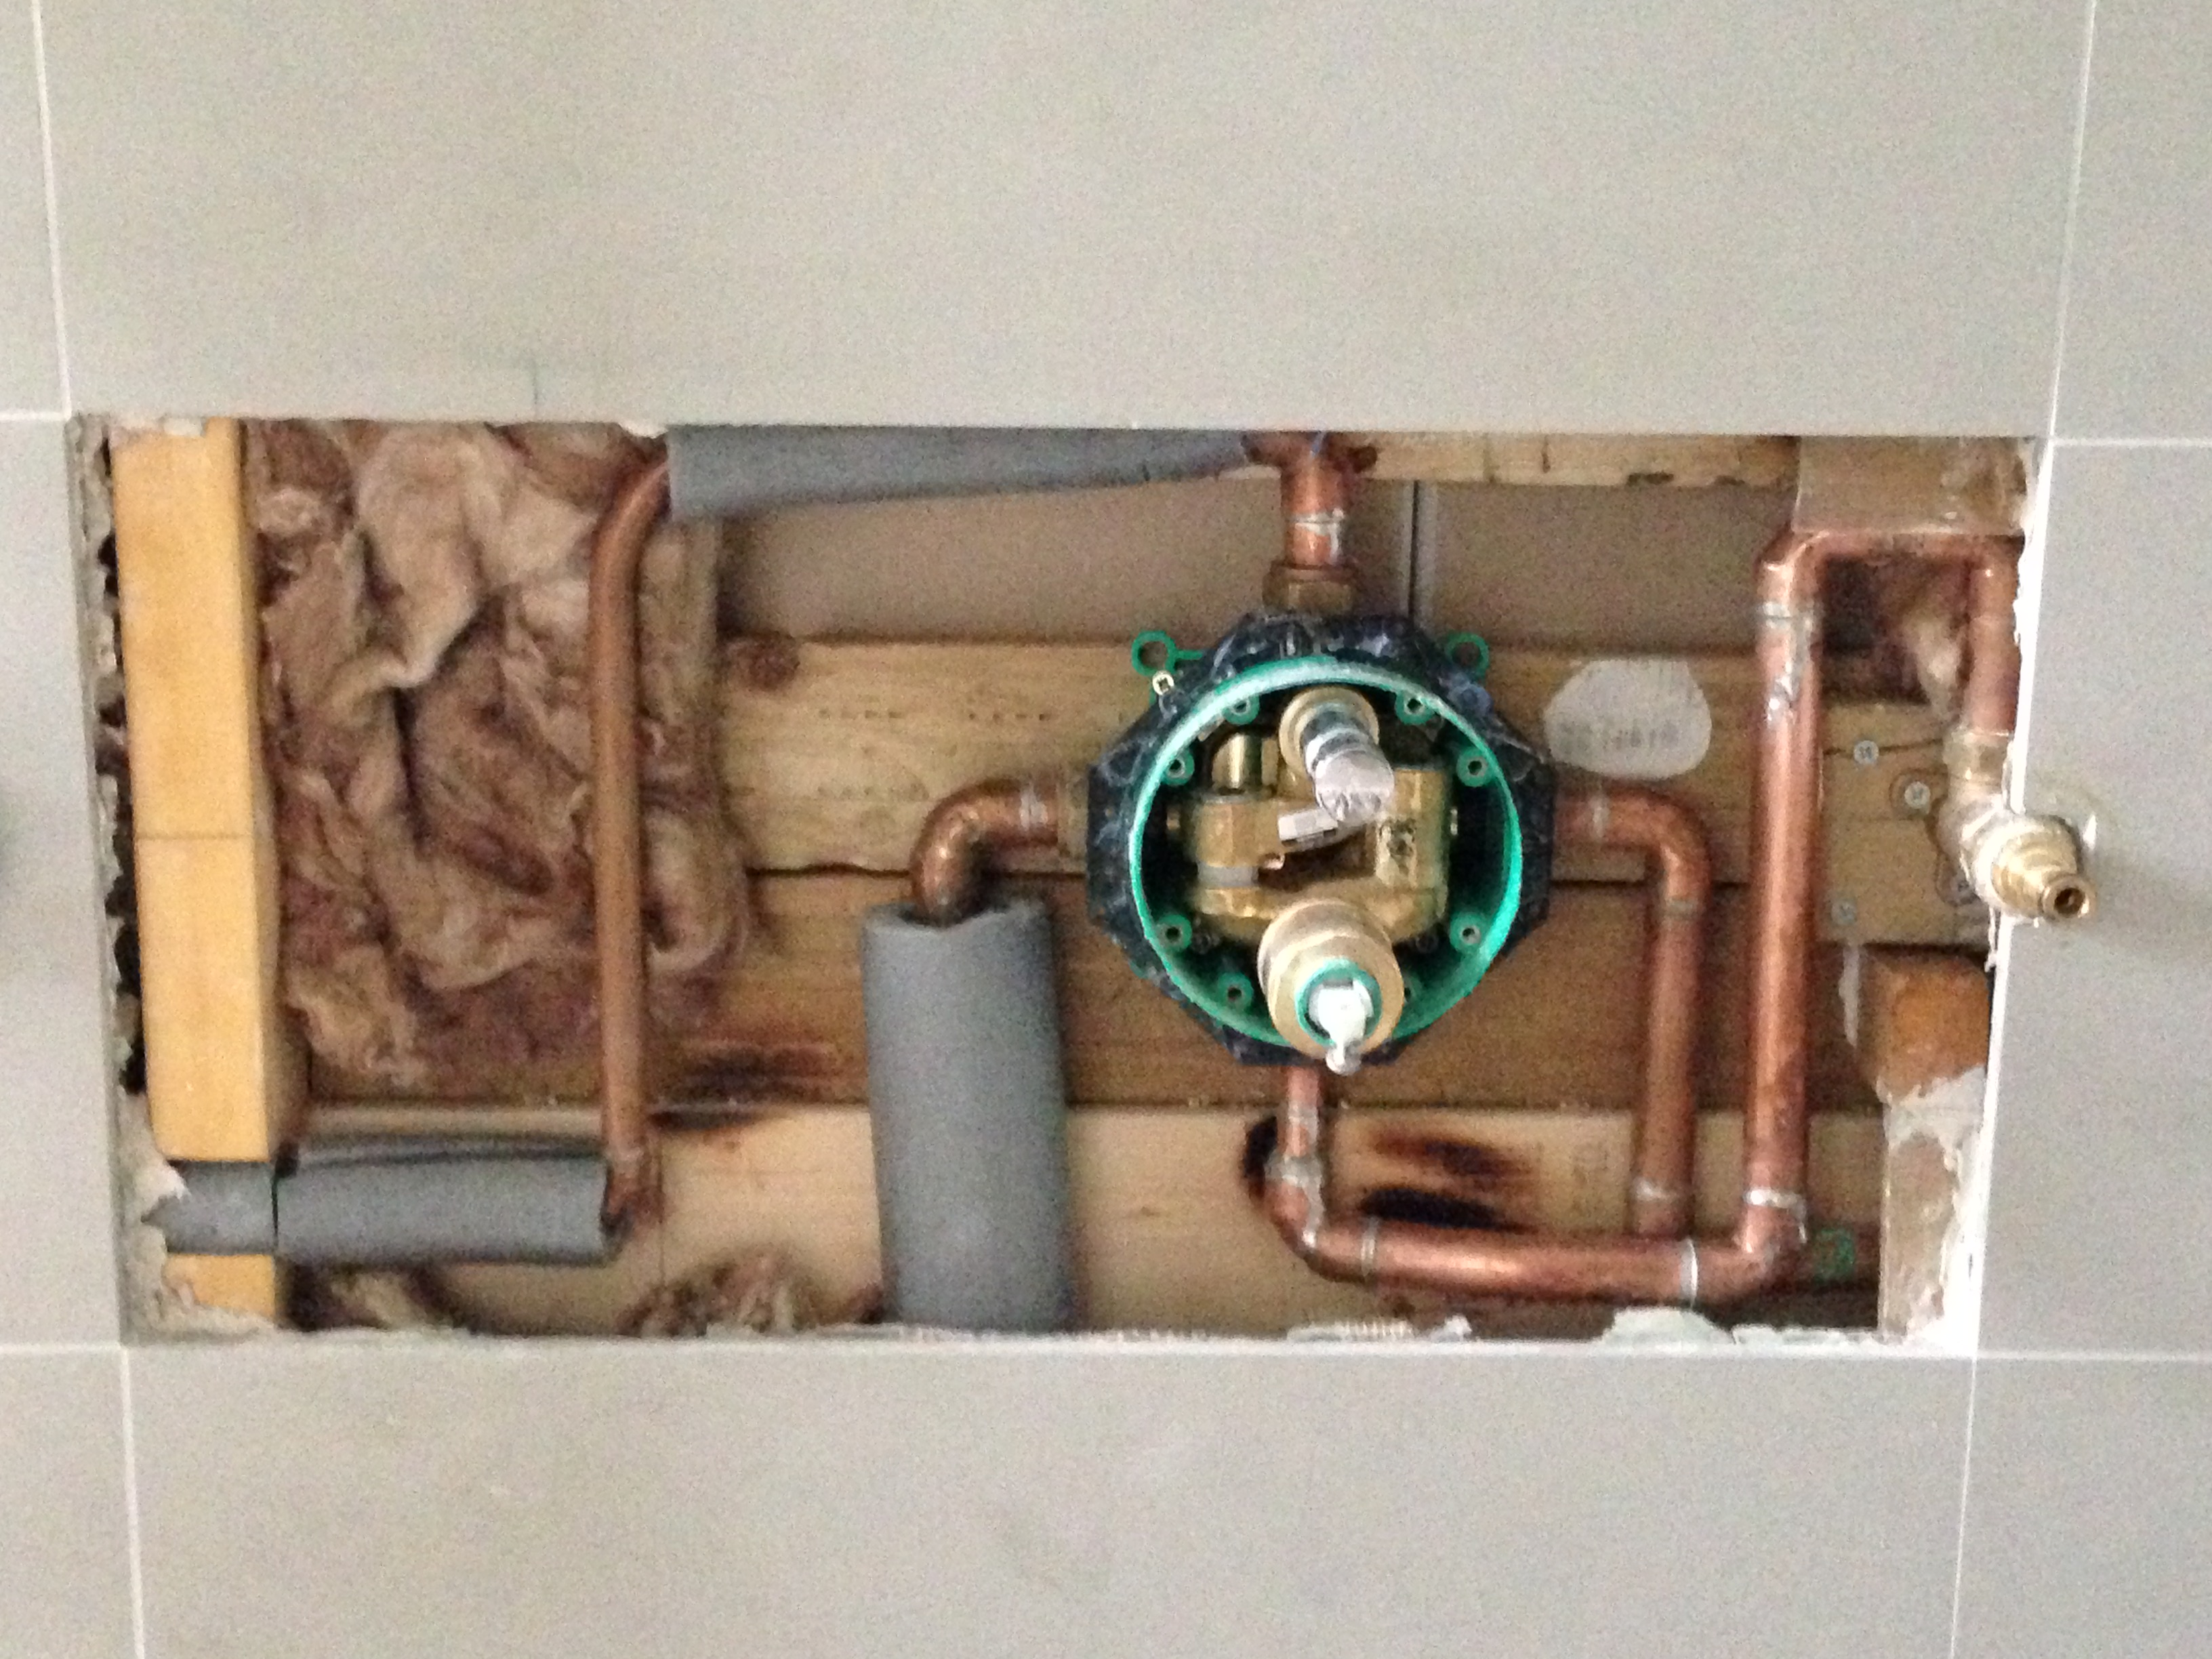 Plumbing a hansgrohe ibox for shower valve vs bath valve for Hansgrohe ibox